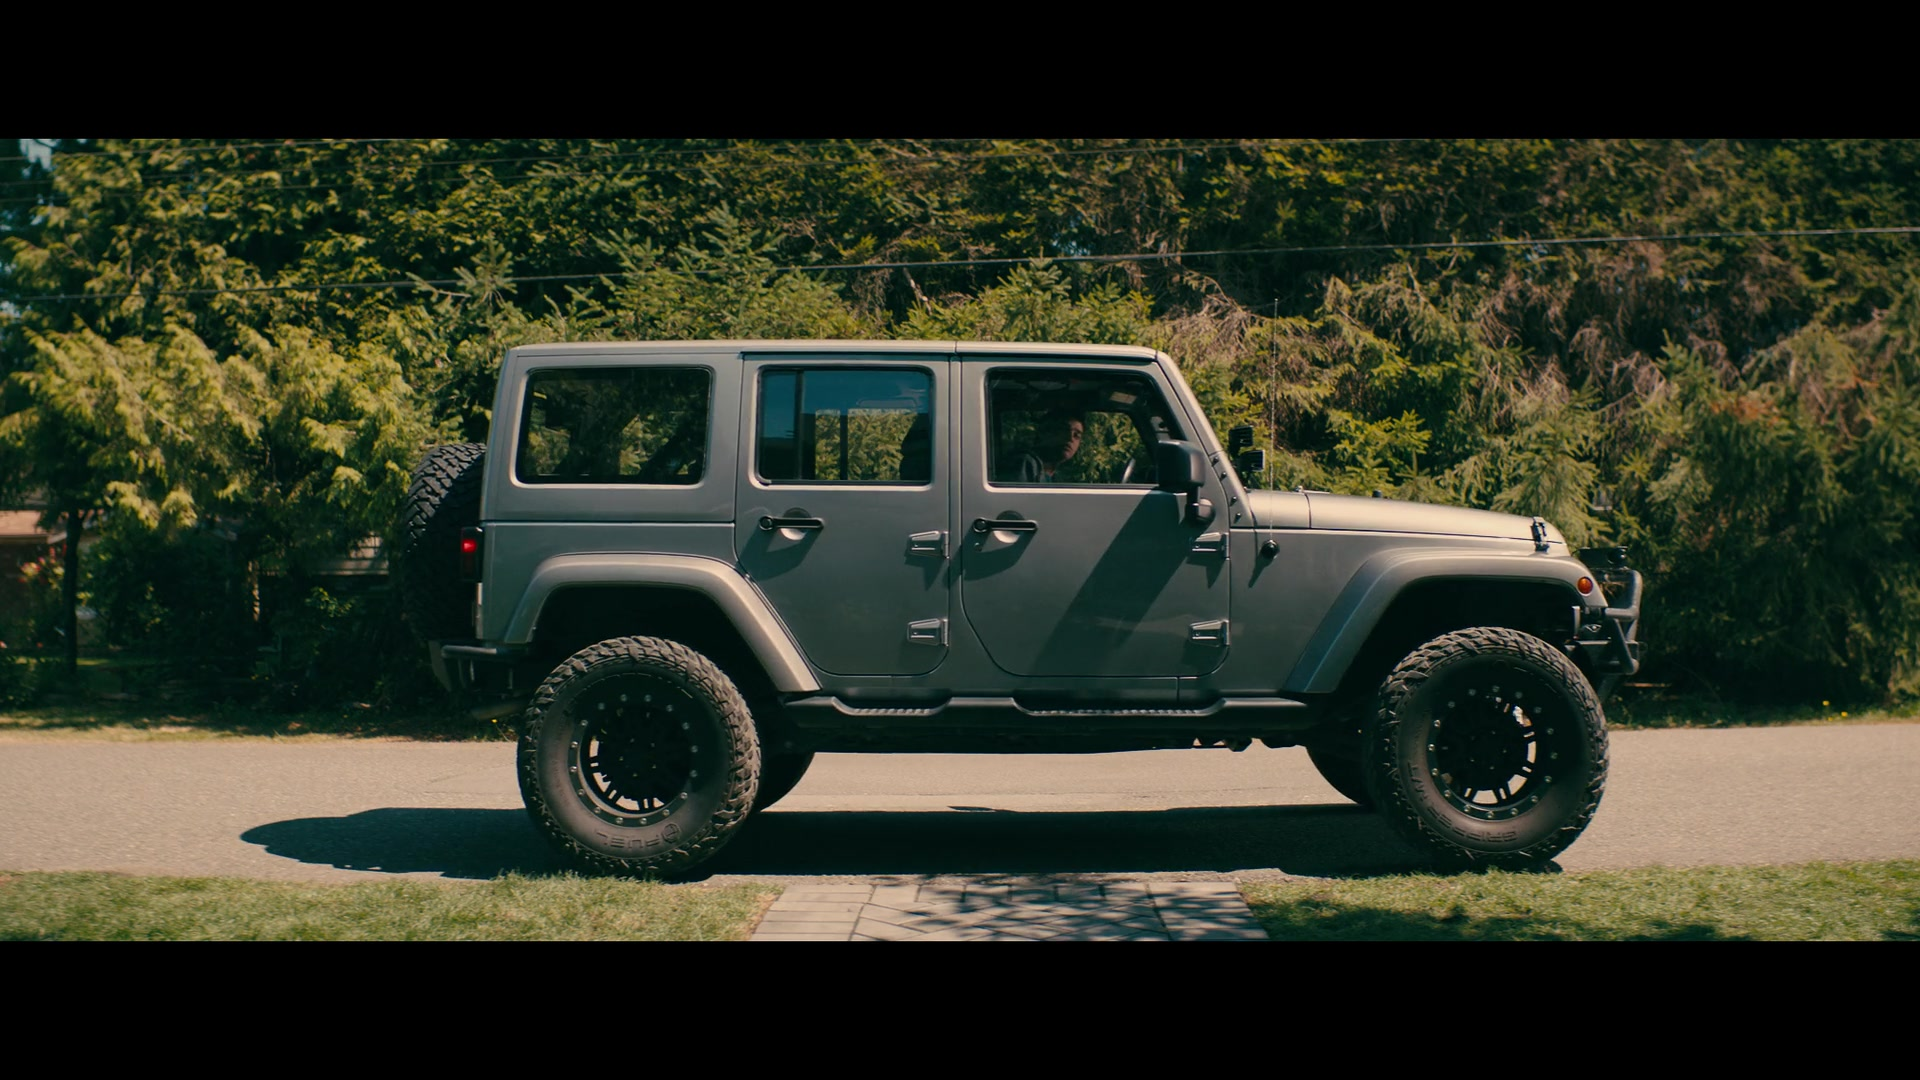 Jeep Wrangler Car Used By Noah Centineo In To All The Boys